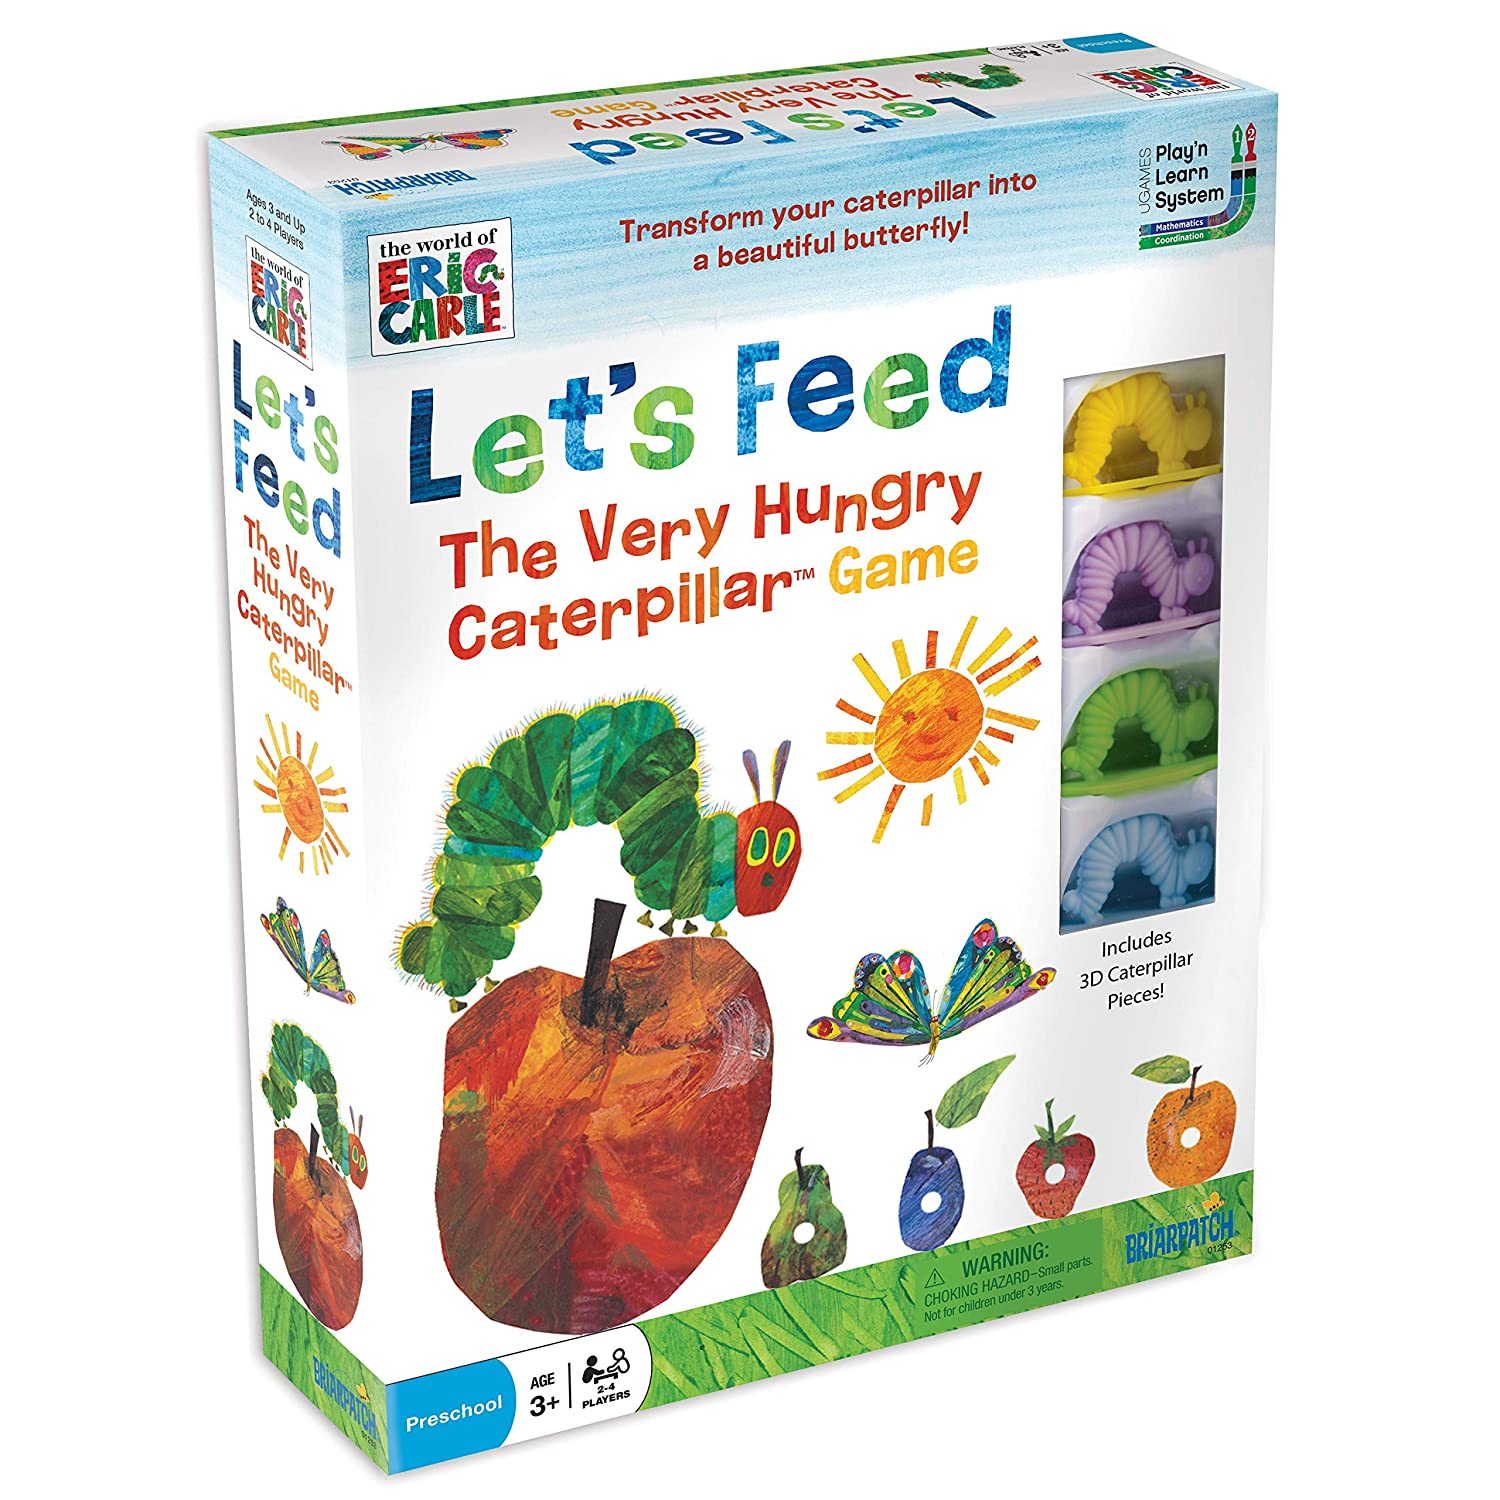 The World of Eric Carle Let's Feed The Very Hungry Caterpillar Game